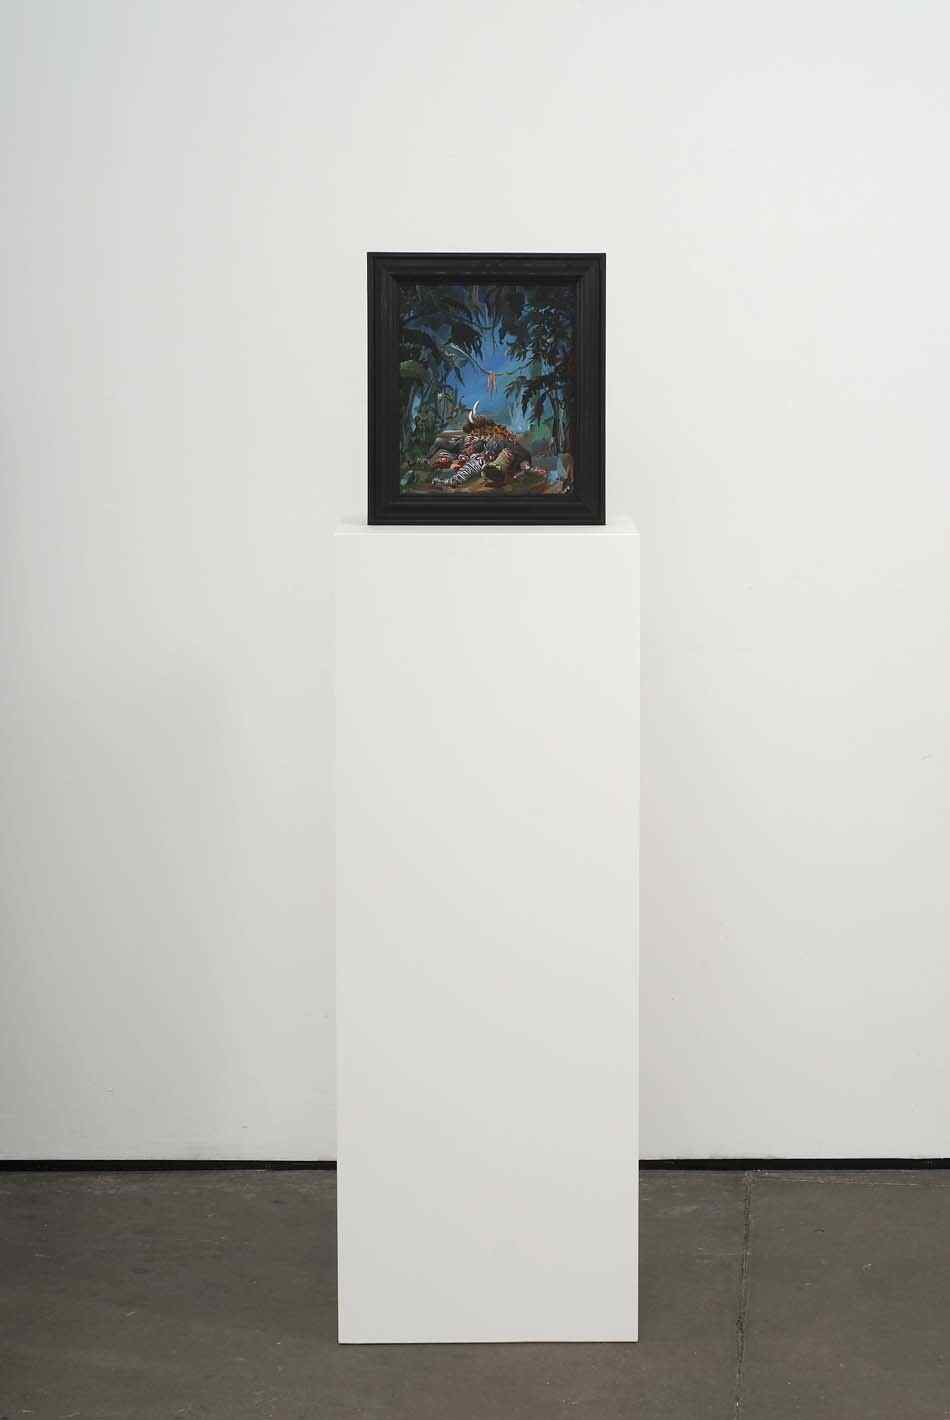 Slaughter   2009   Double-sided acrylic on board in artists frame mounted on pedestal   147.3 x 40 x 28cm